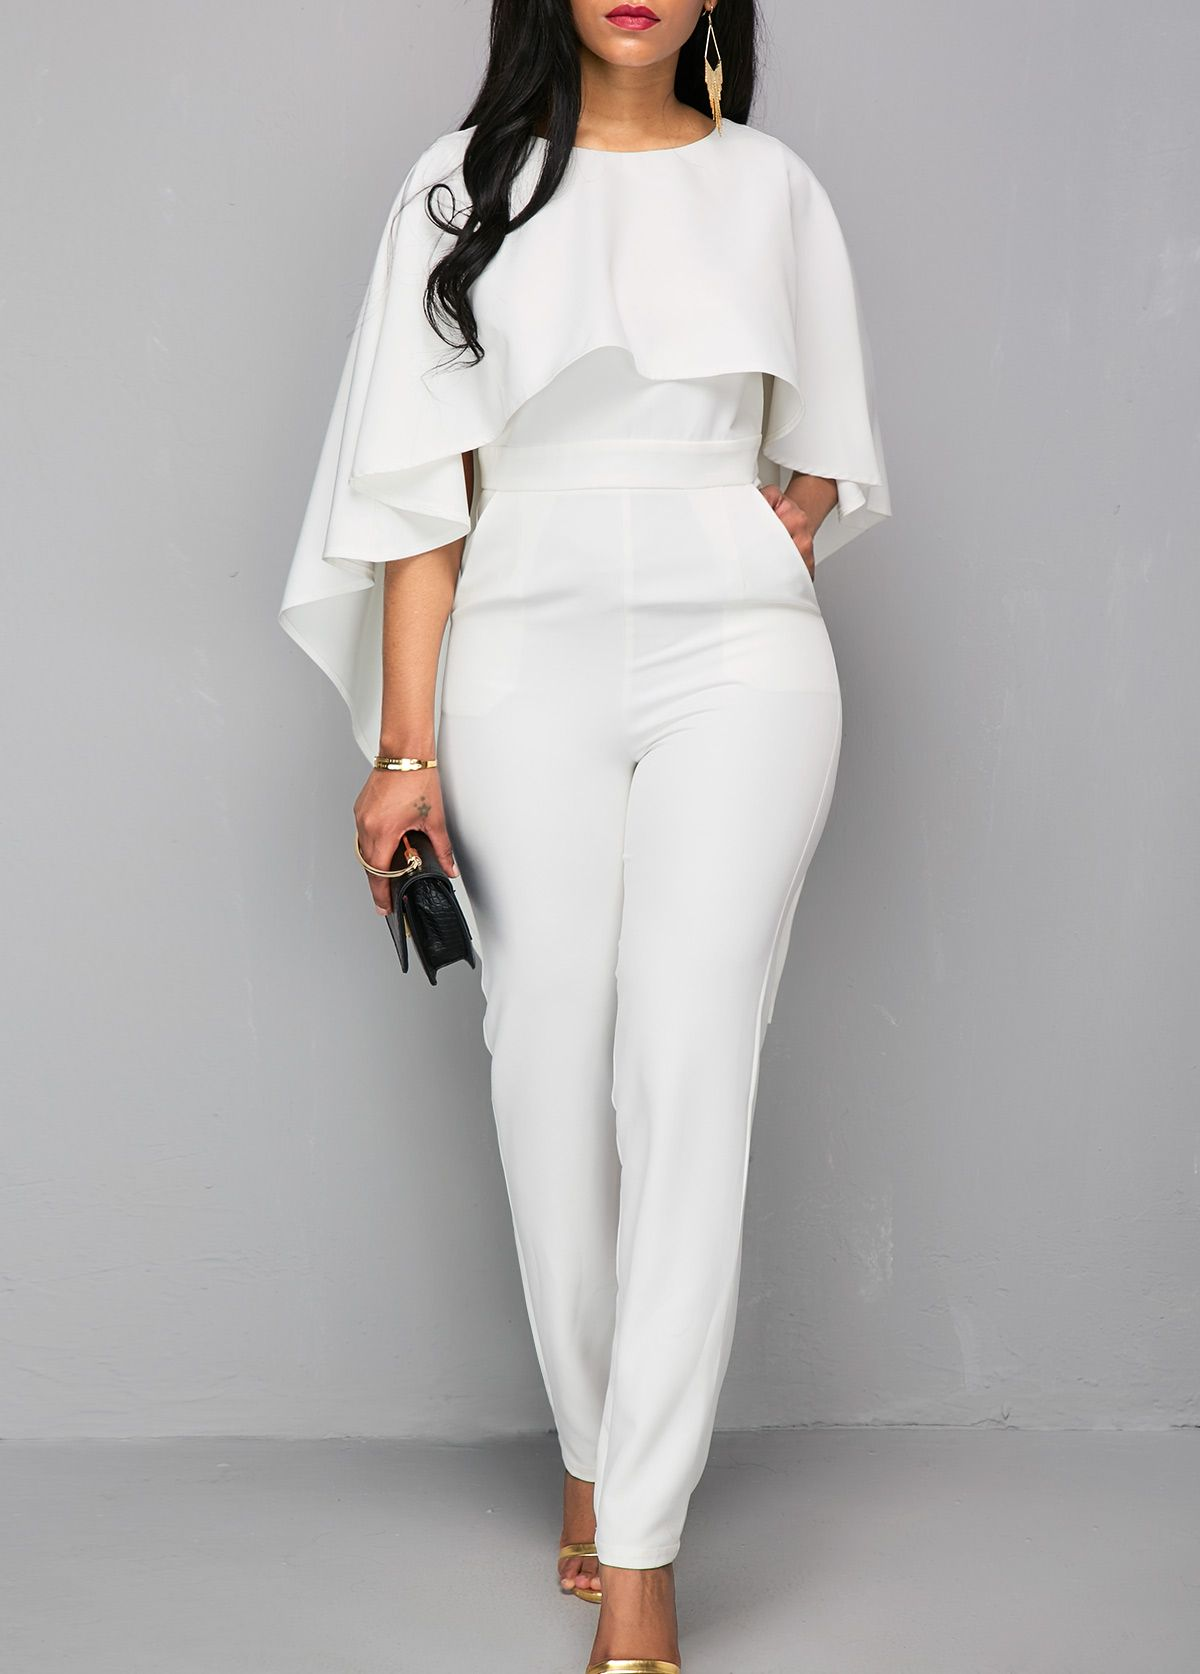 Zipper Closure White Open Back Jumpsuit  9ec17c1d8861